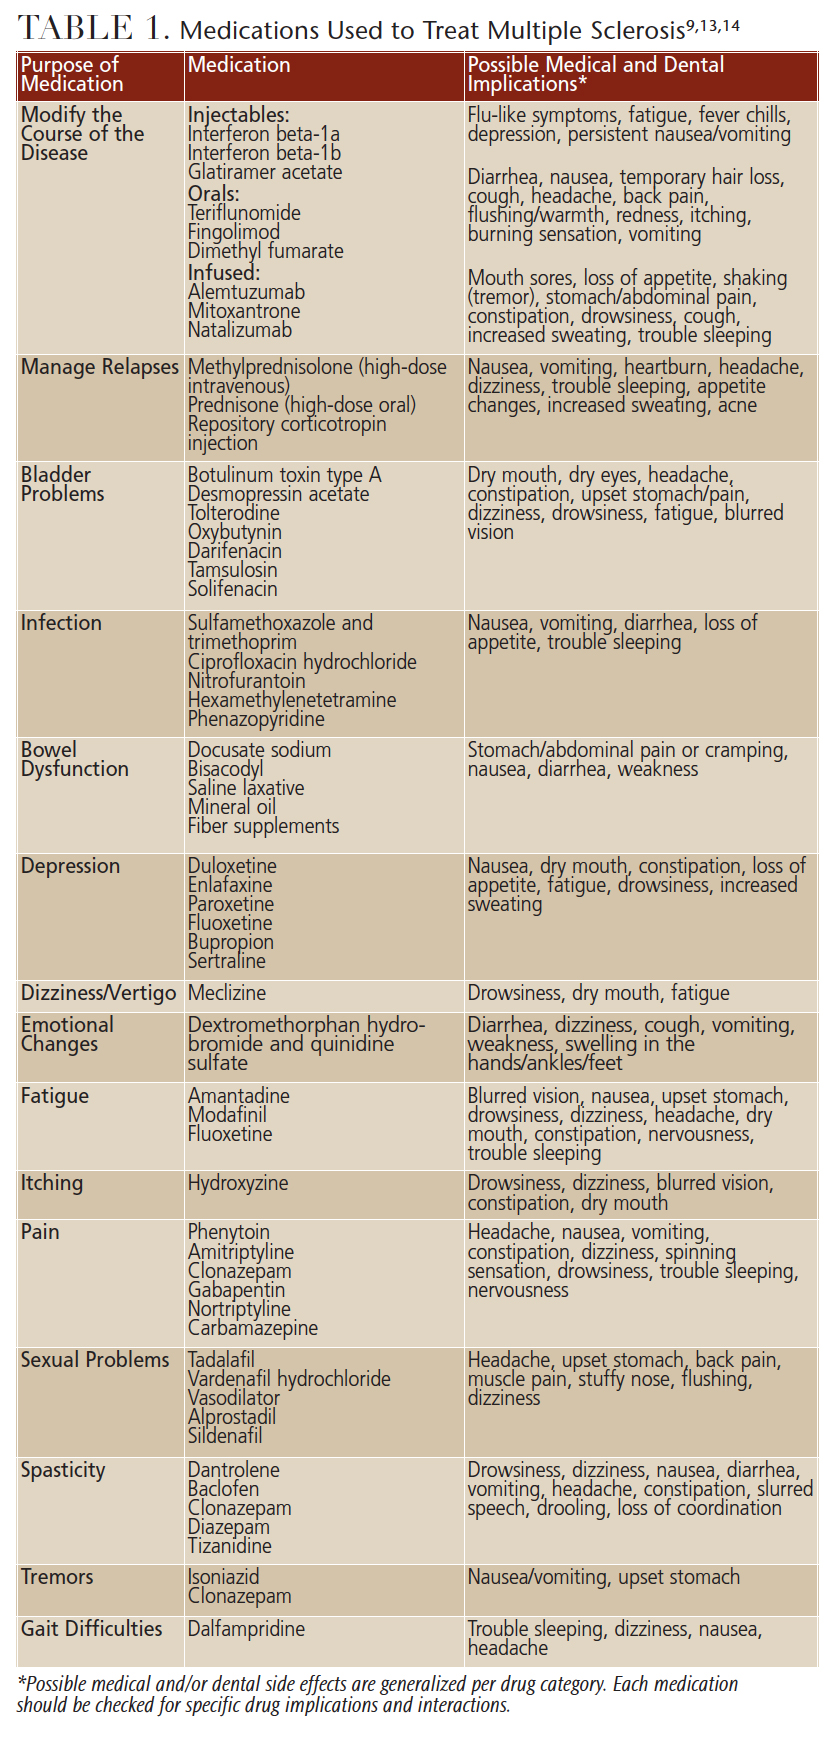 *Possible medical and/or dental side effects are generalized per drug category. Each medication should be checked for specific drug implications and interactions.